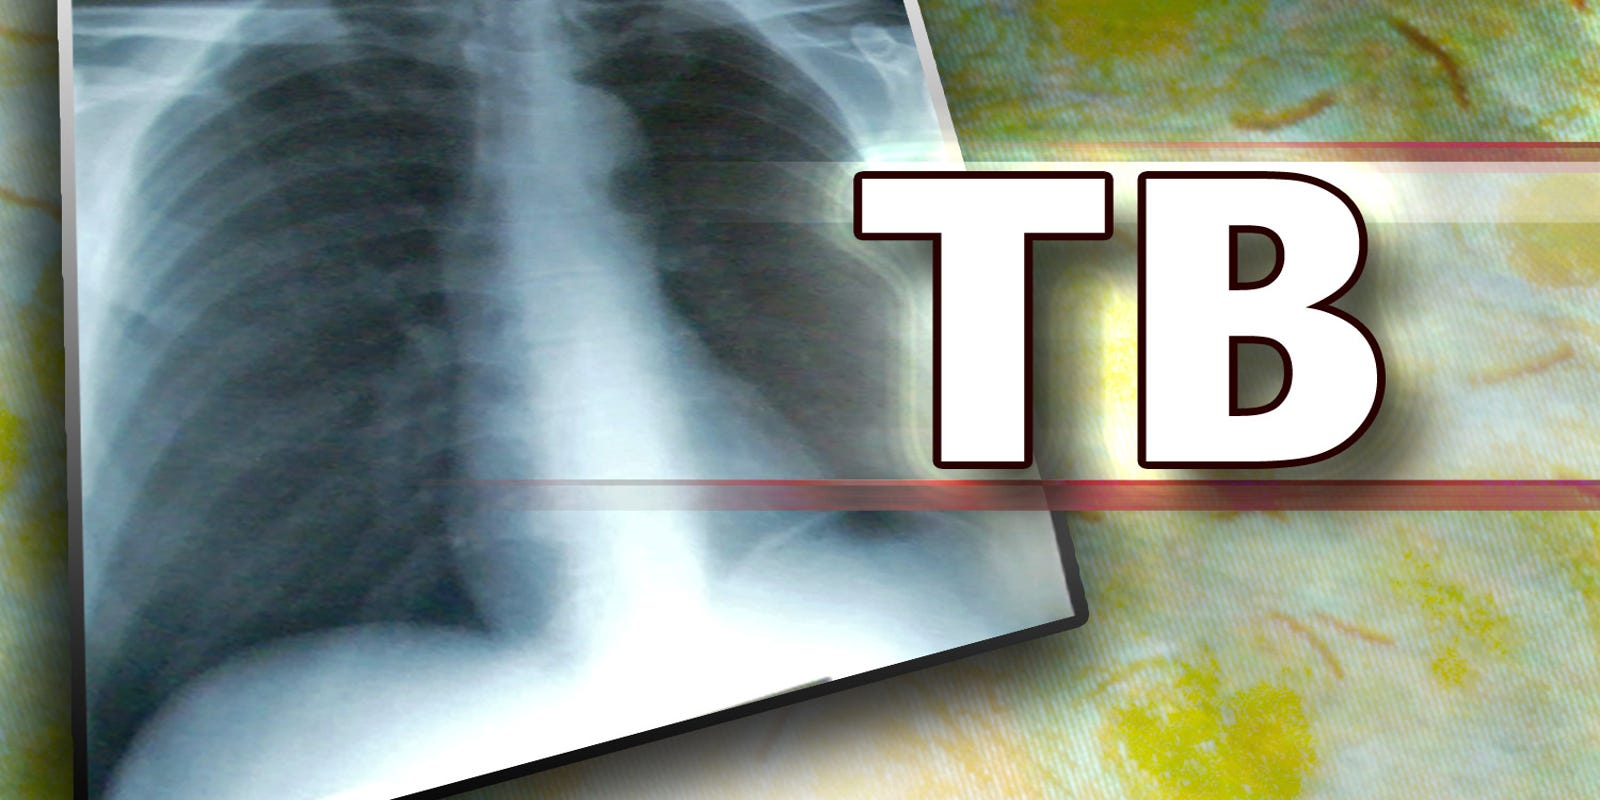 Tuberculosis outbreak investigated at homeless shelters